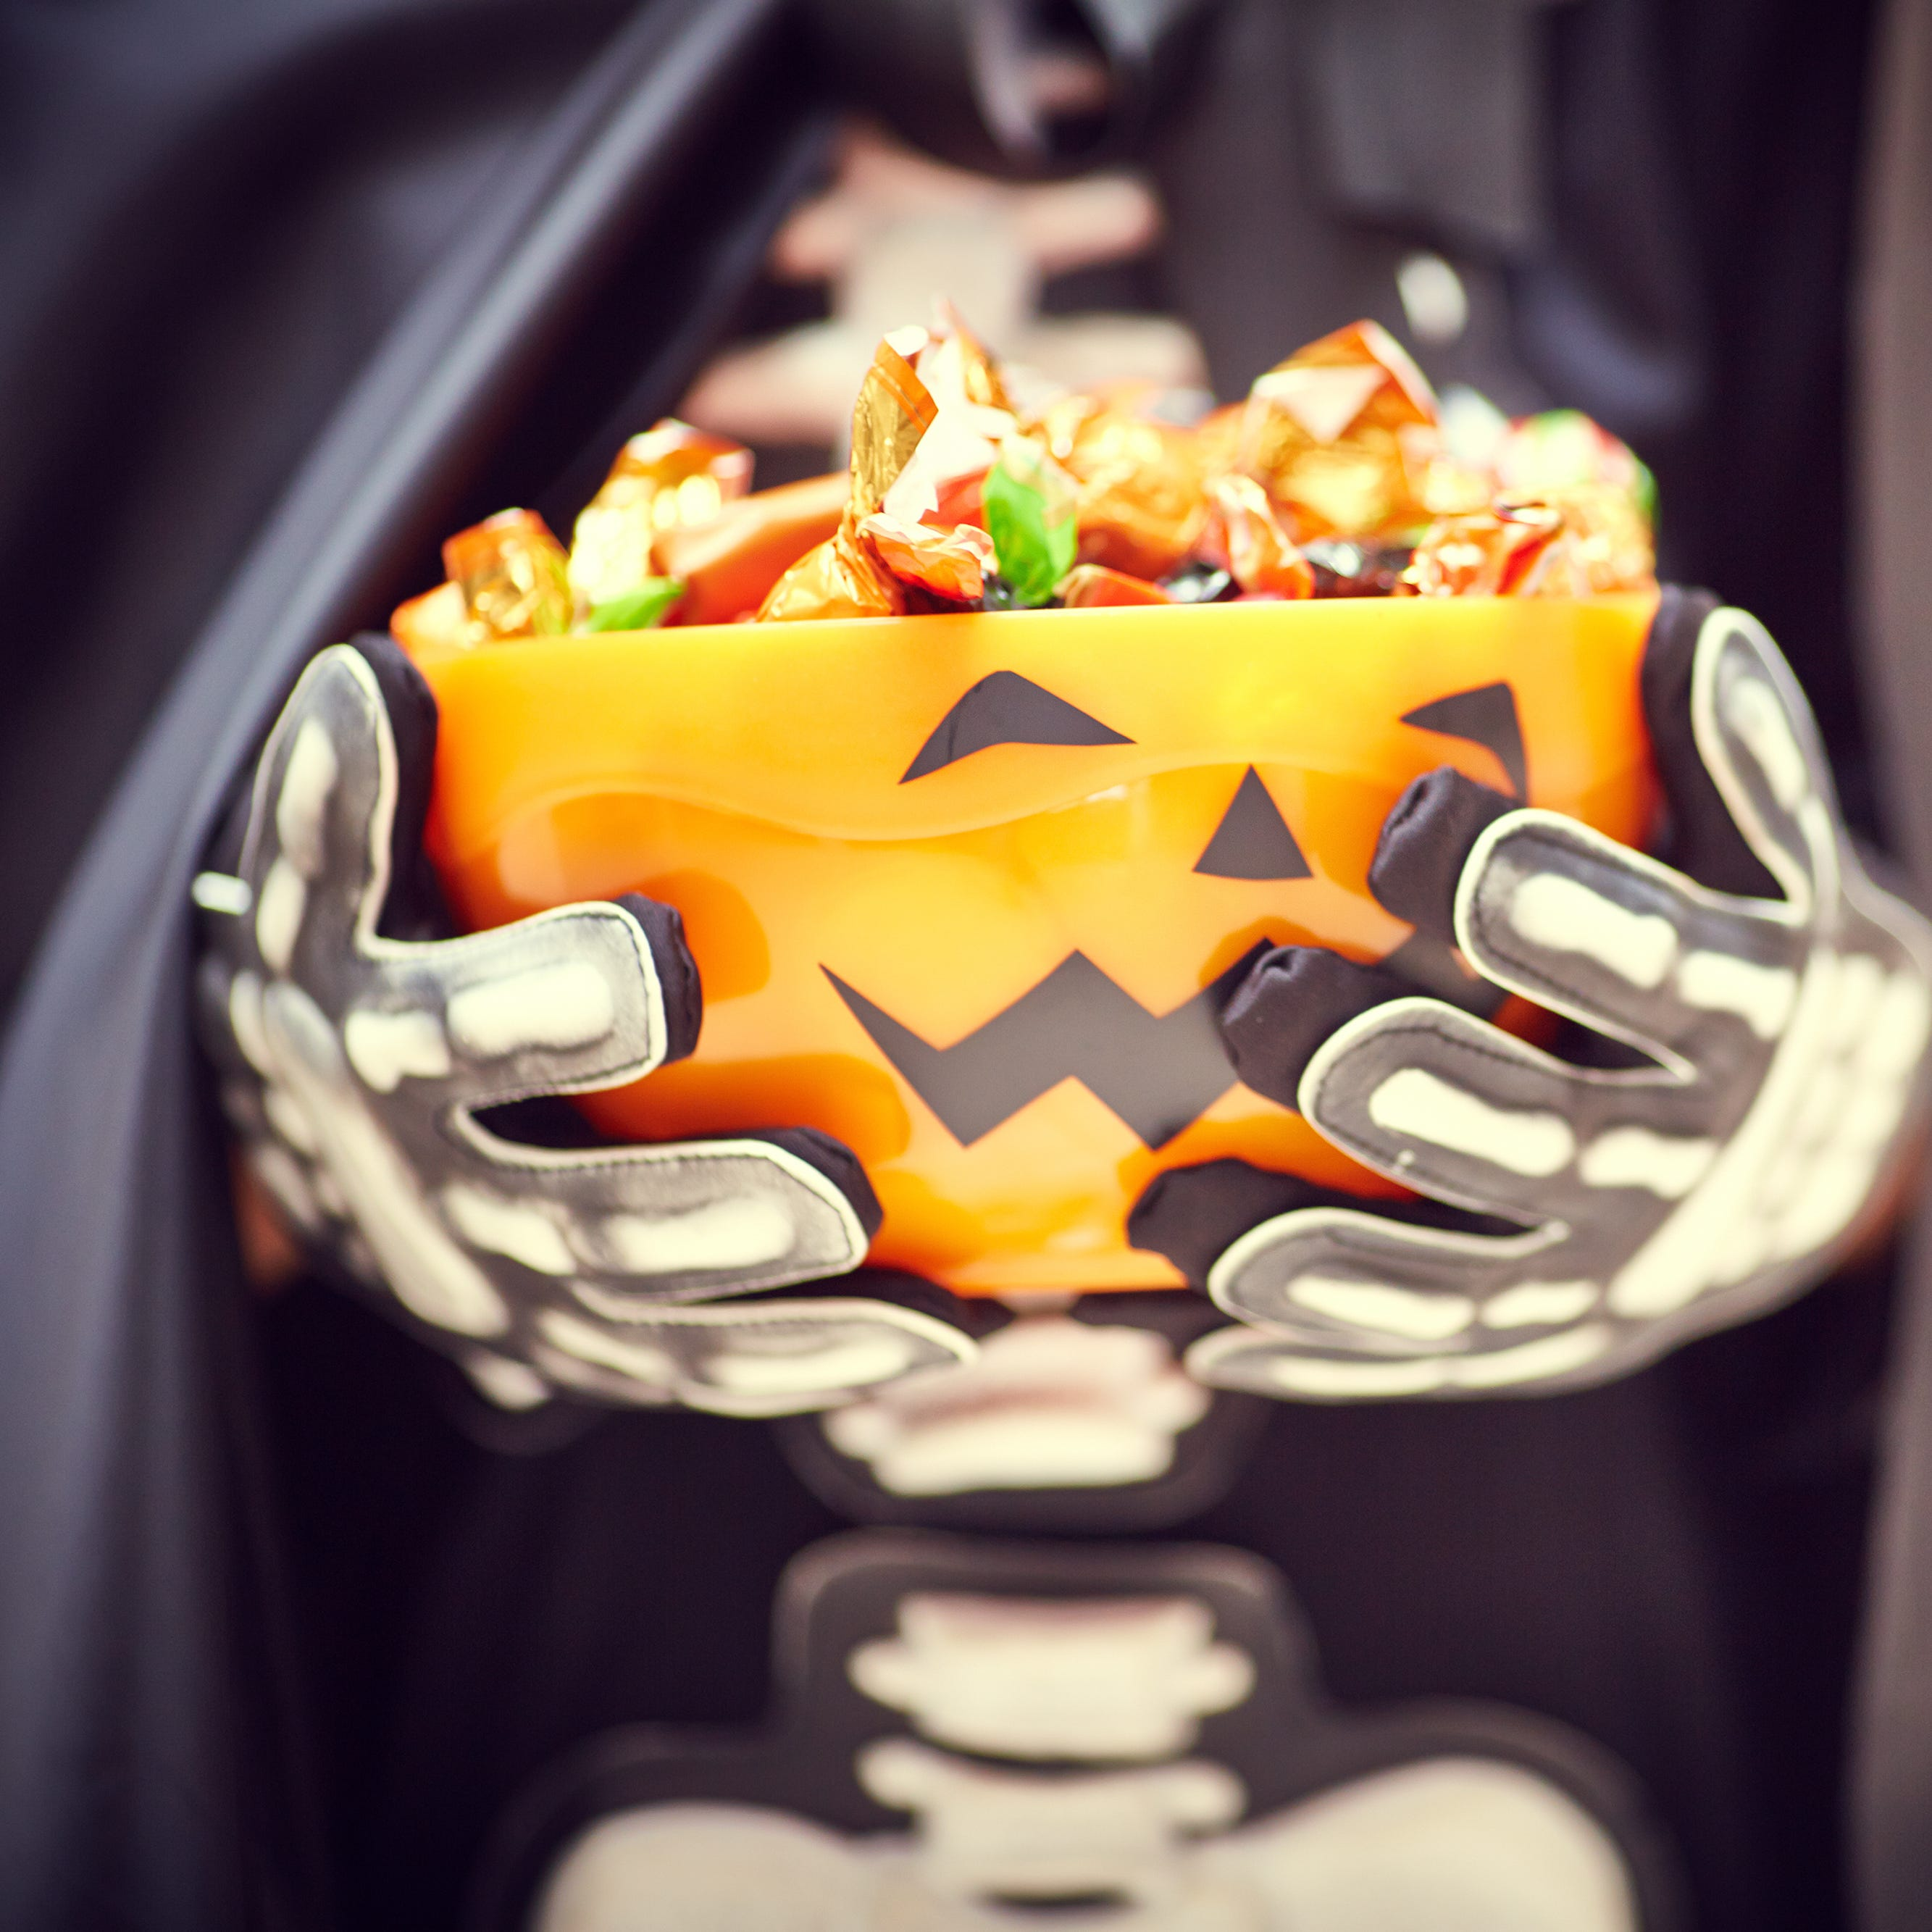 Going trick-or-treating? Keep these safety tips in mind.